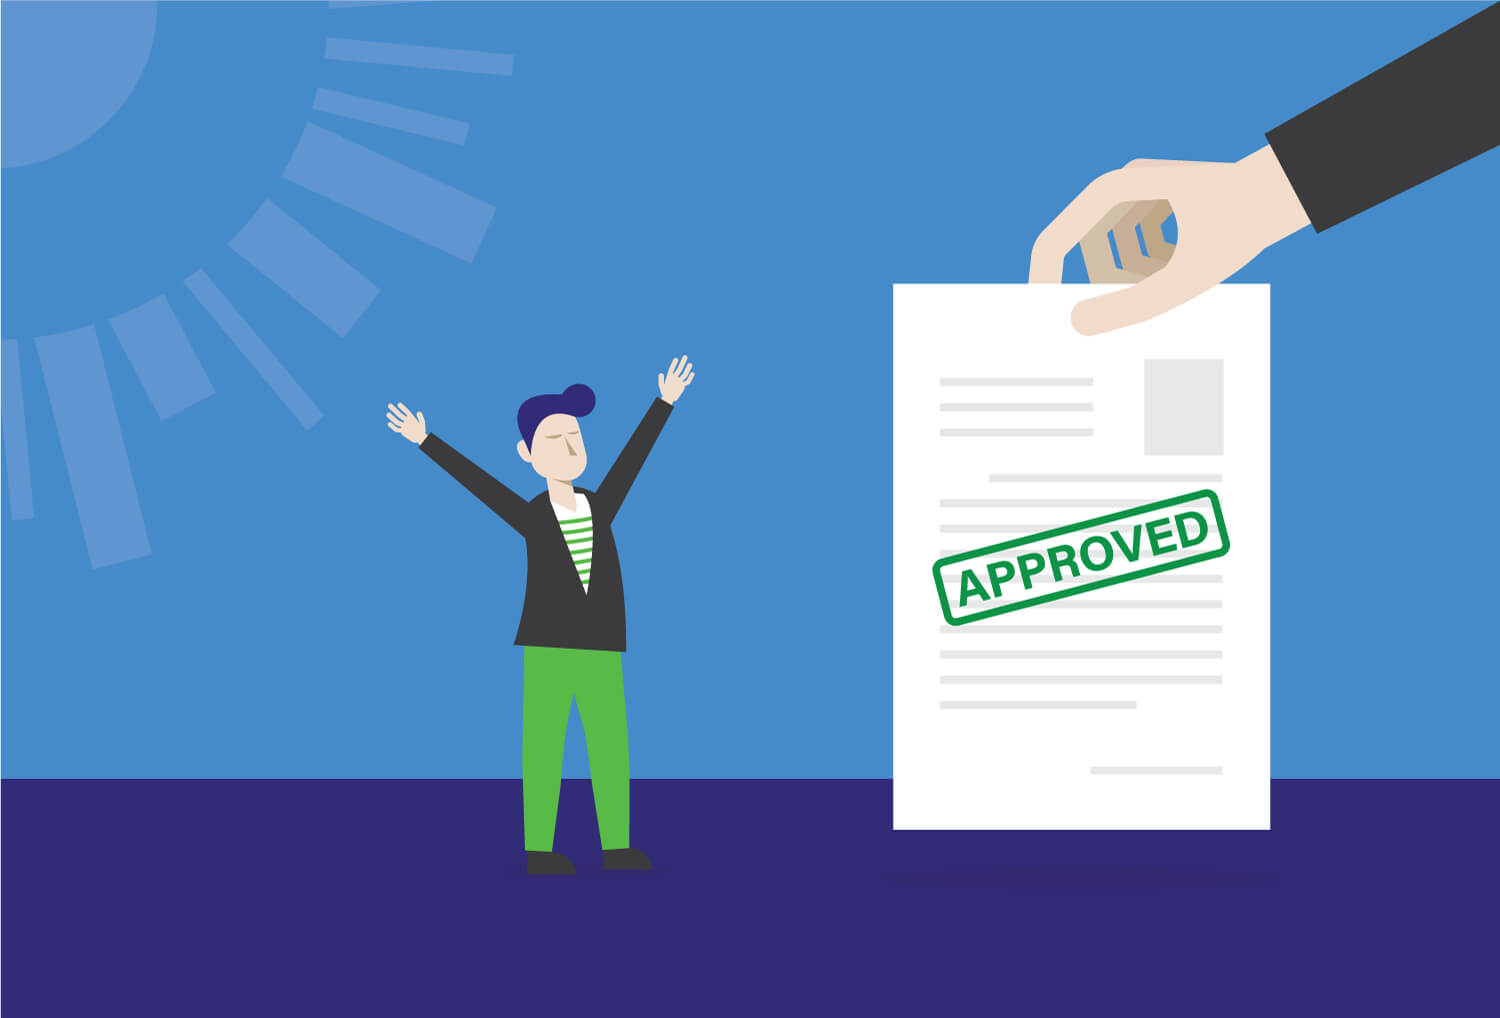 Illustration of a celebrating person when their personal loan application is approved.